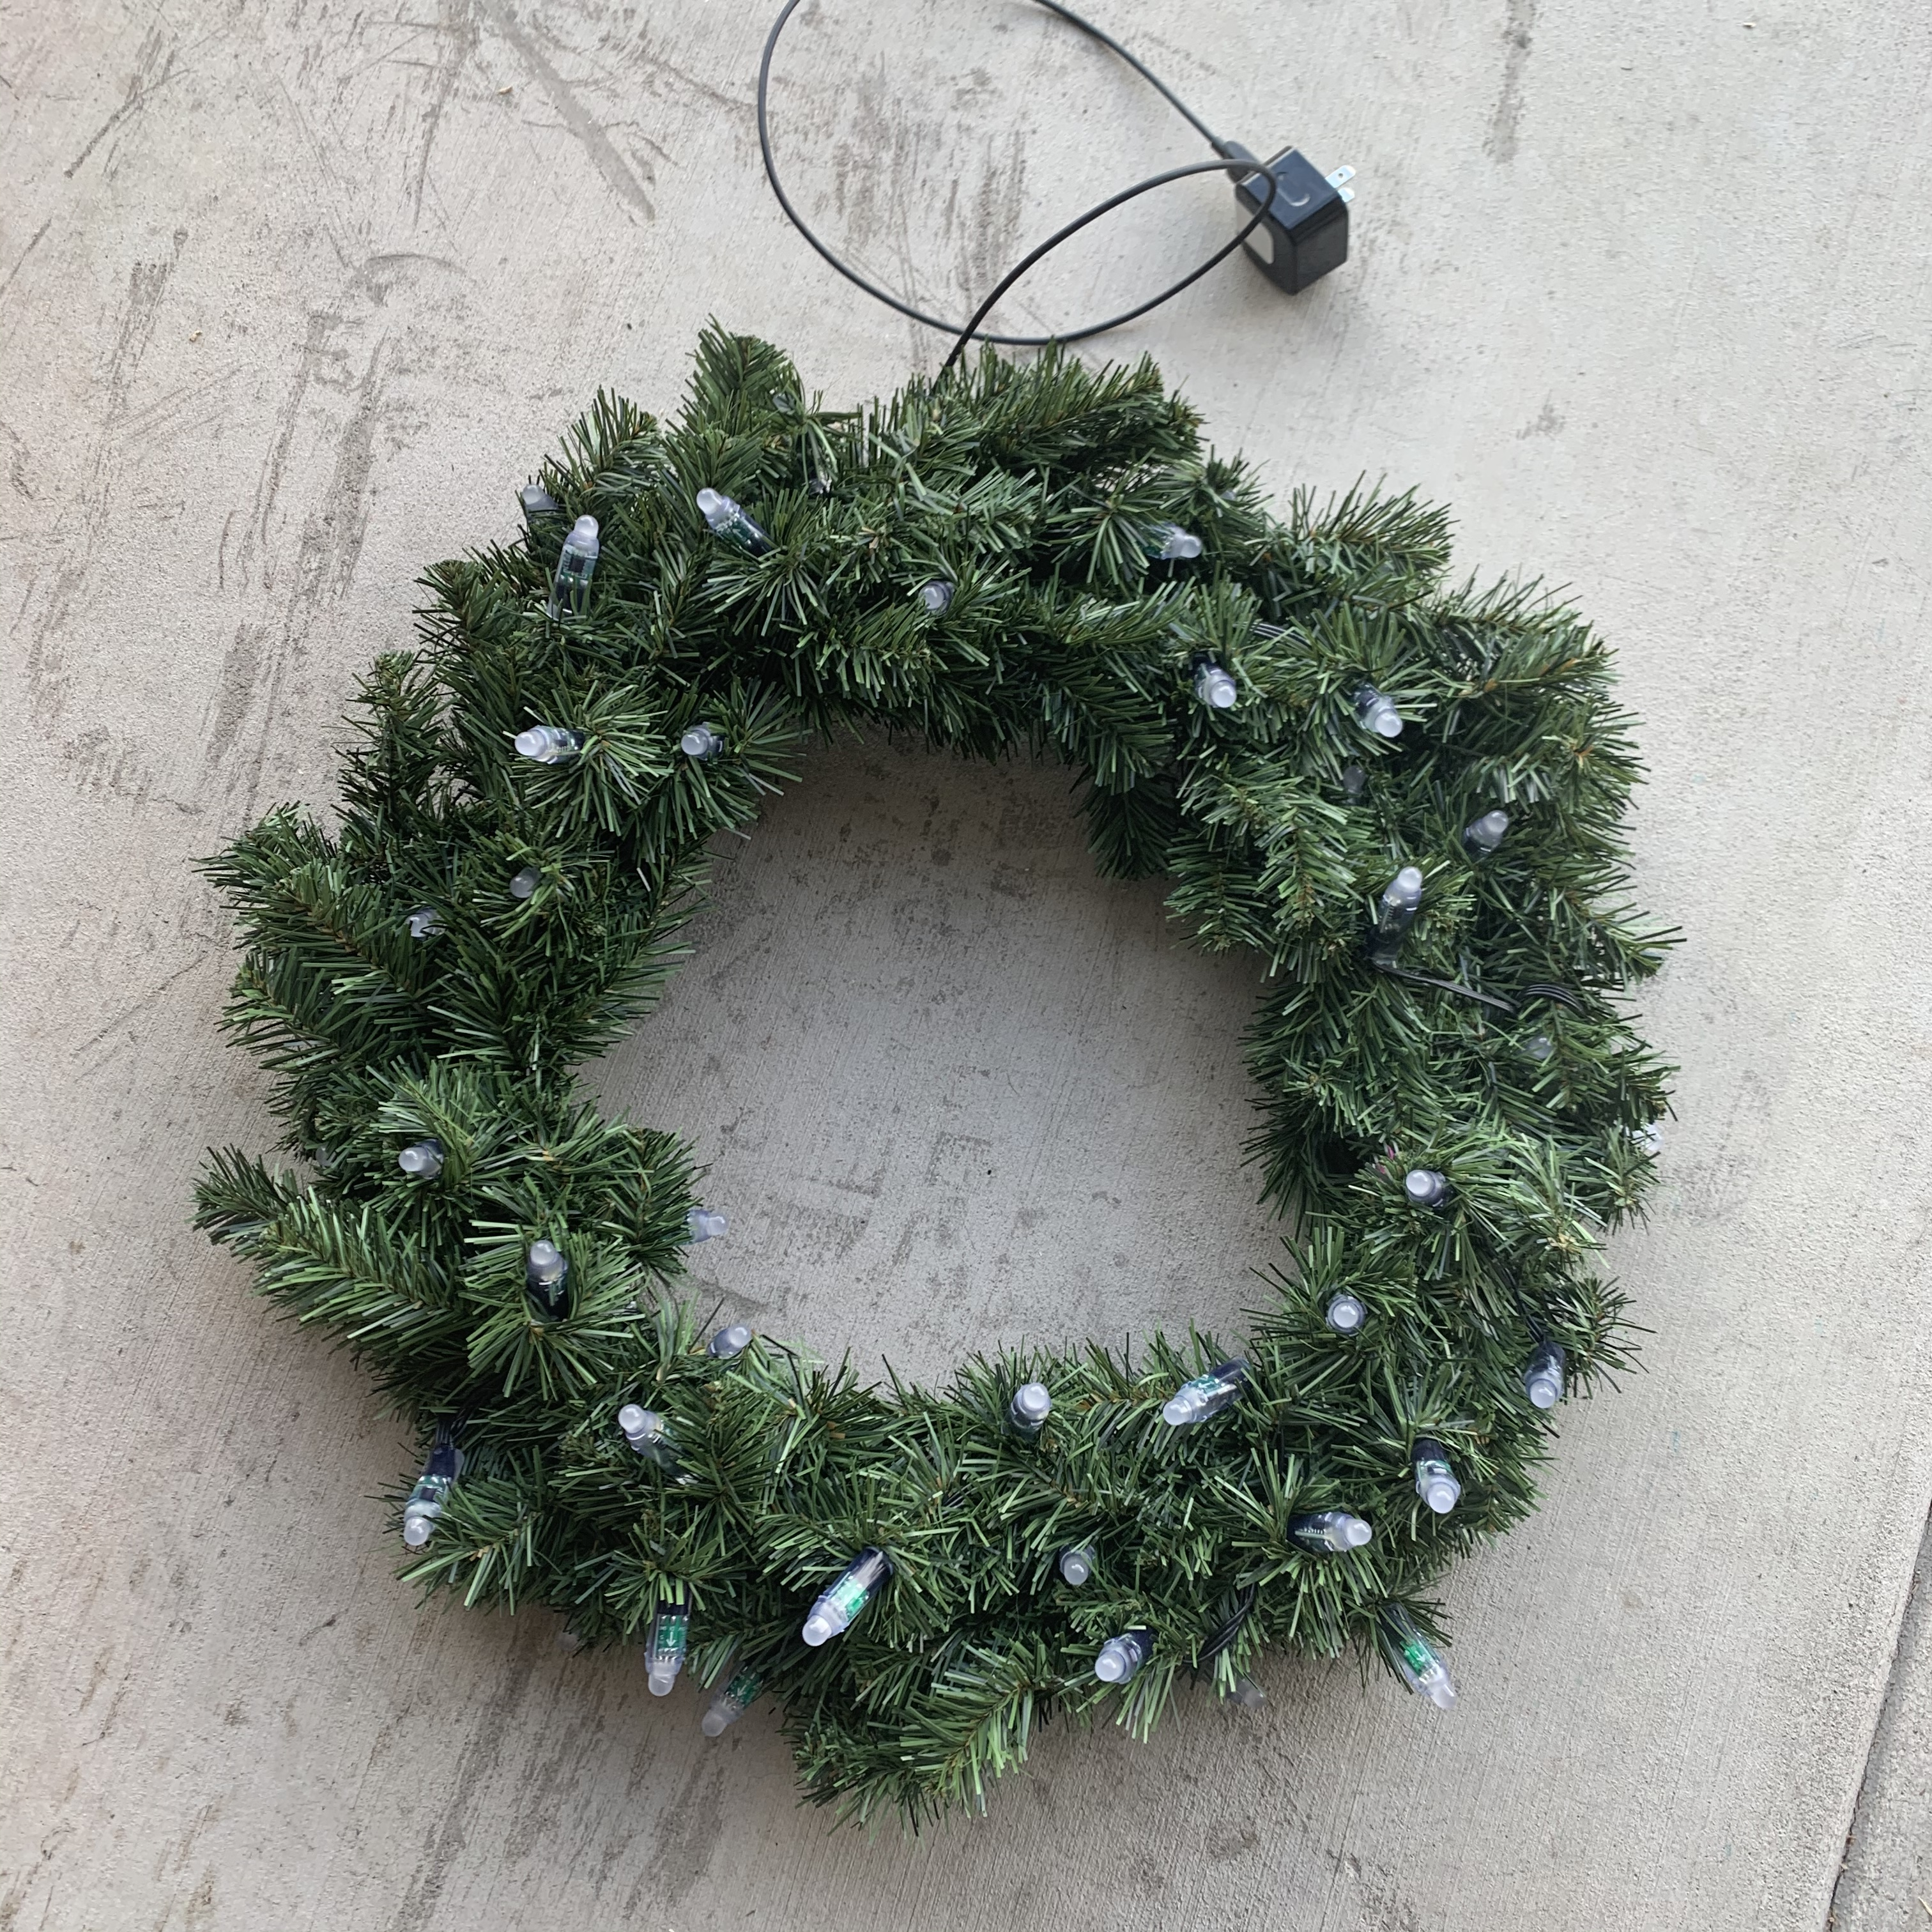 Front of wreath with WS2811 LEDs